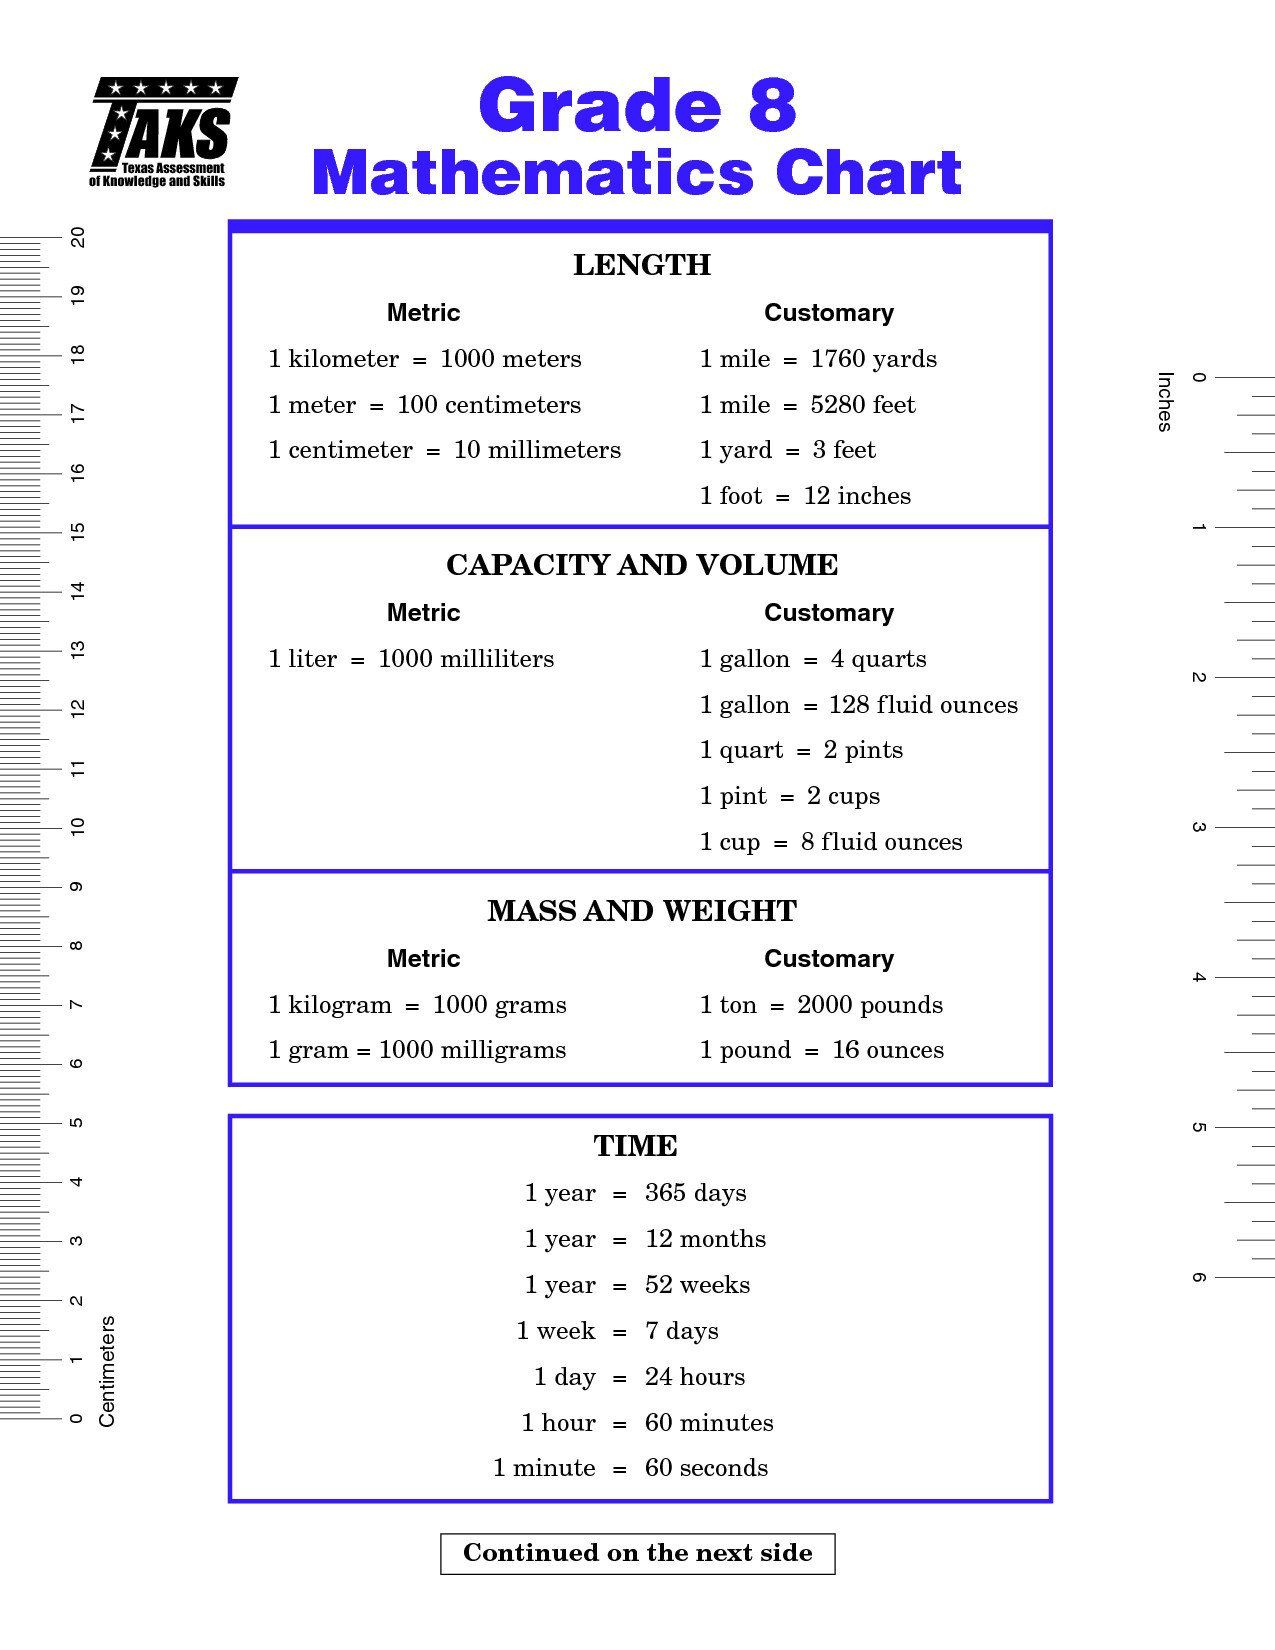 2nd Grade Math Worksheets Measurement 5 Free Math Worksheets Second Grade 2 Measu 2nd Grade Math Worksheets Free Printable Math Worksheets Free Math Worksheets